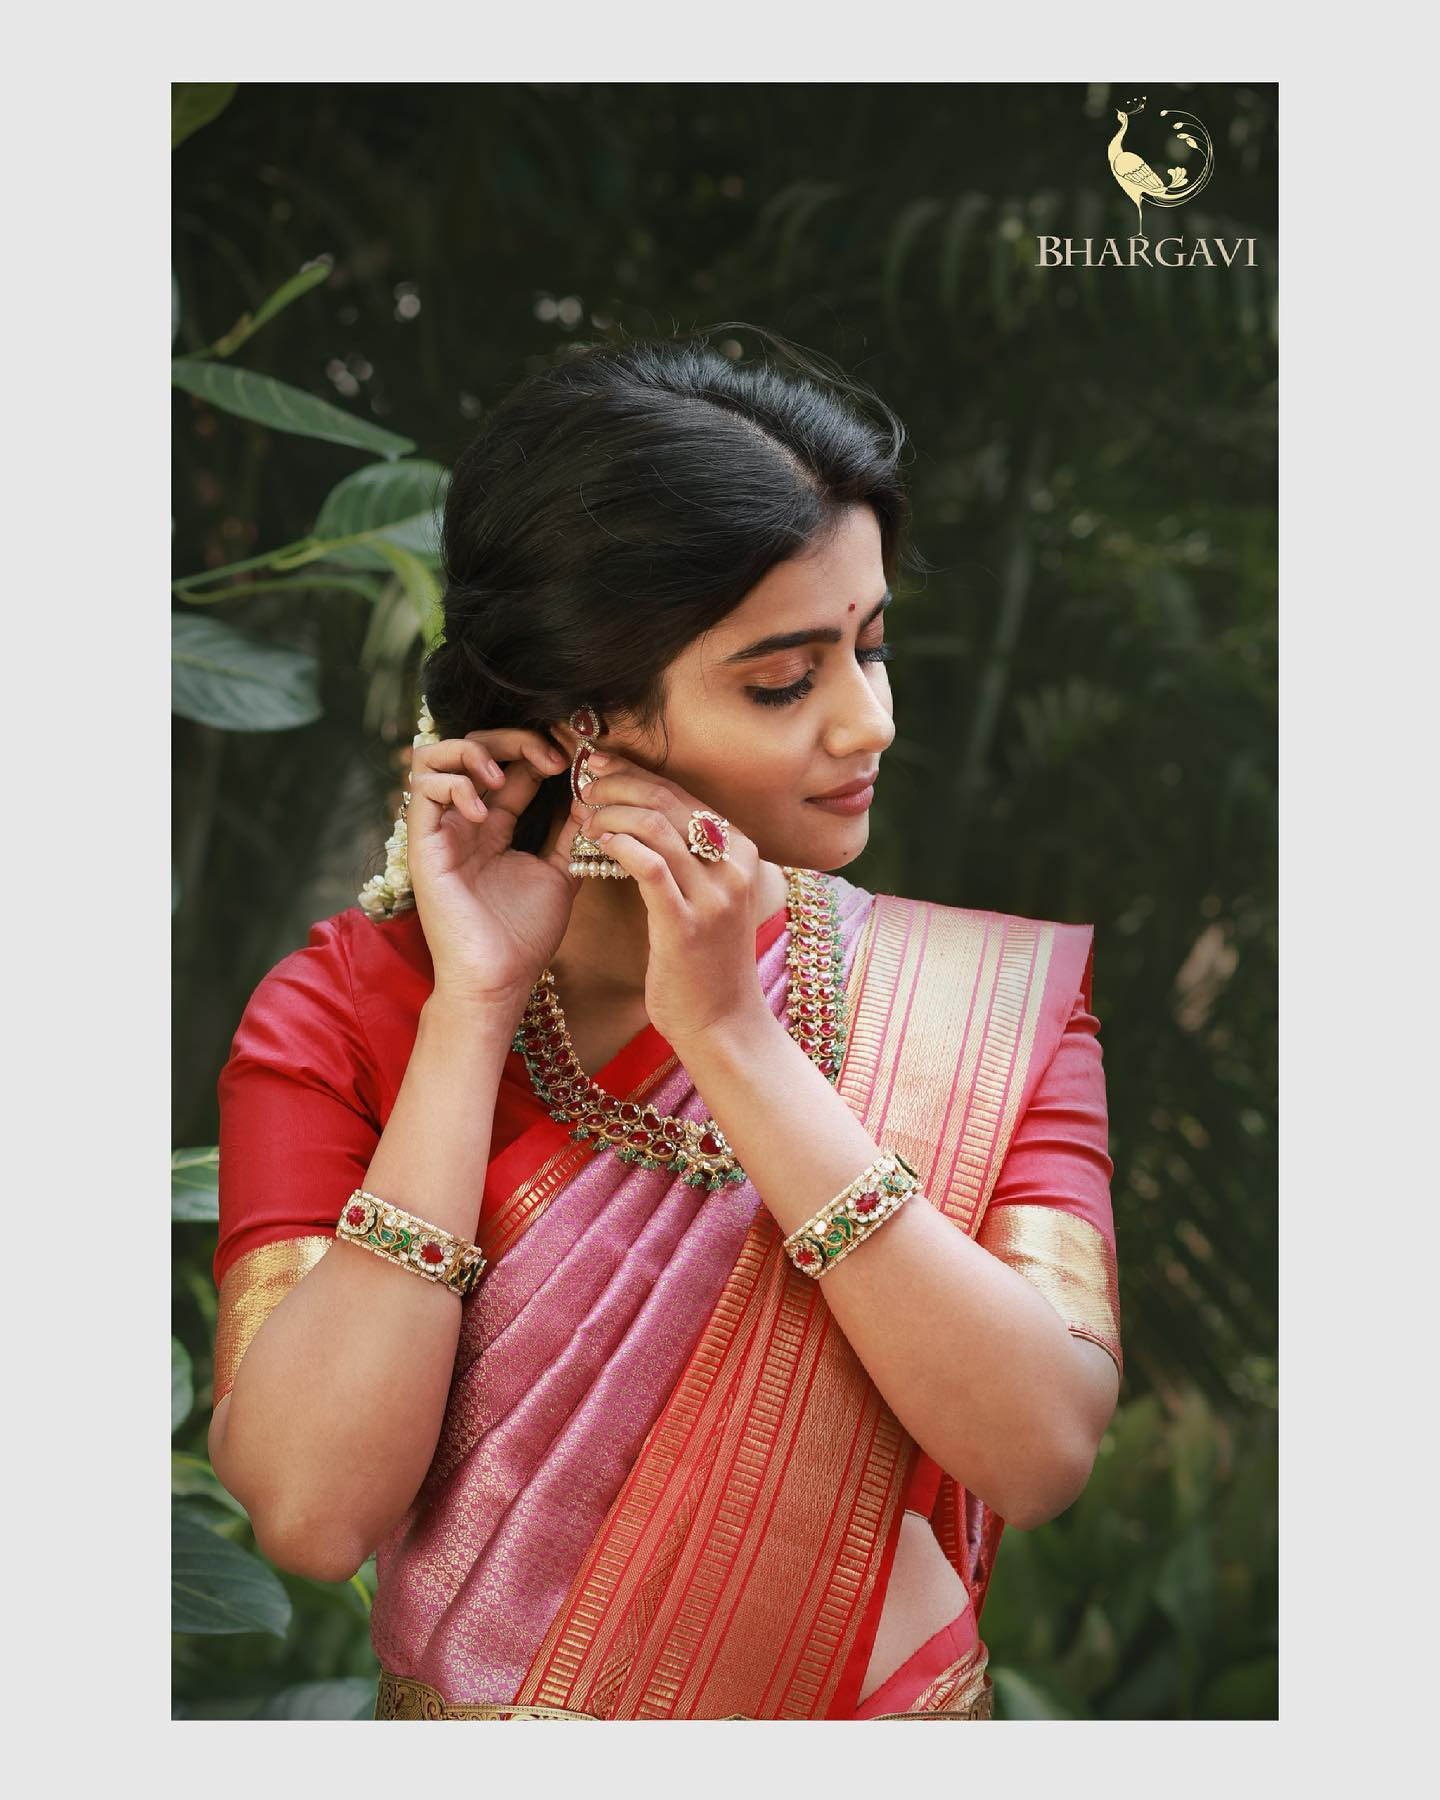 House of bhargavi kunam designs blends the timeless nature with contemporary styles to bring out designs that are elegant and modern. They always brings to you exquisite collection of handwoven saris exclusive kanjeevam  paithani banaras and many more.... 2021-06-02